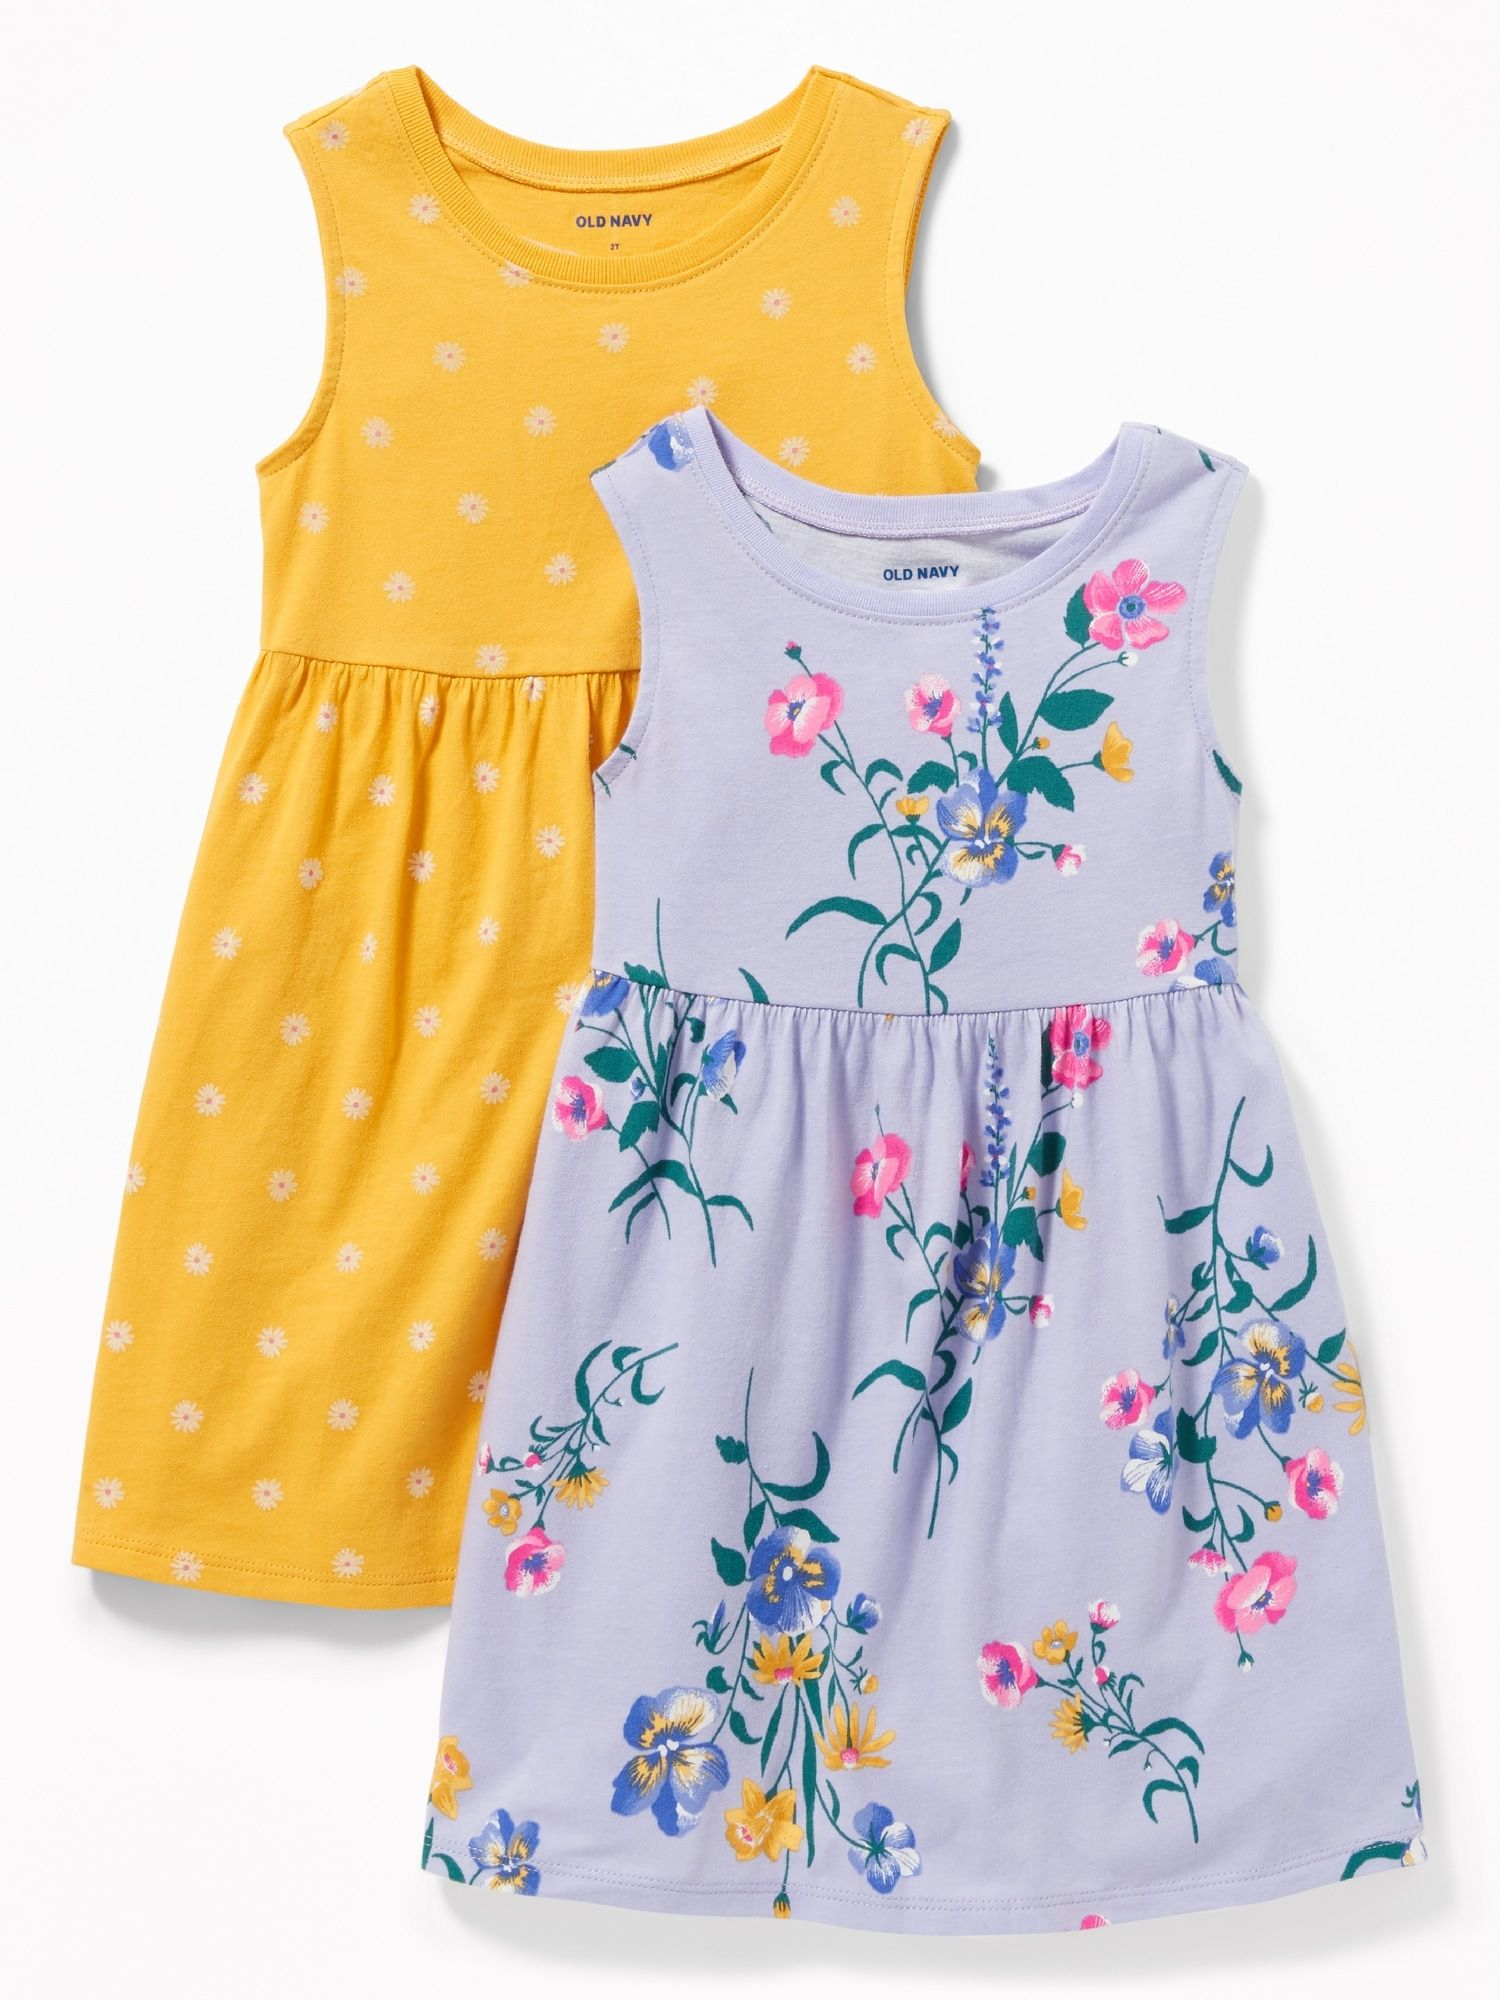 4763f11e54c85 Floral-Print Jersey Fit & Flare Dress 2-Pack for Toddler Girls | Old Navy